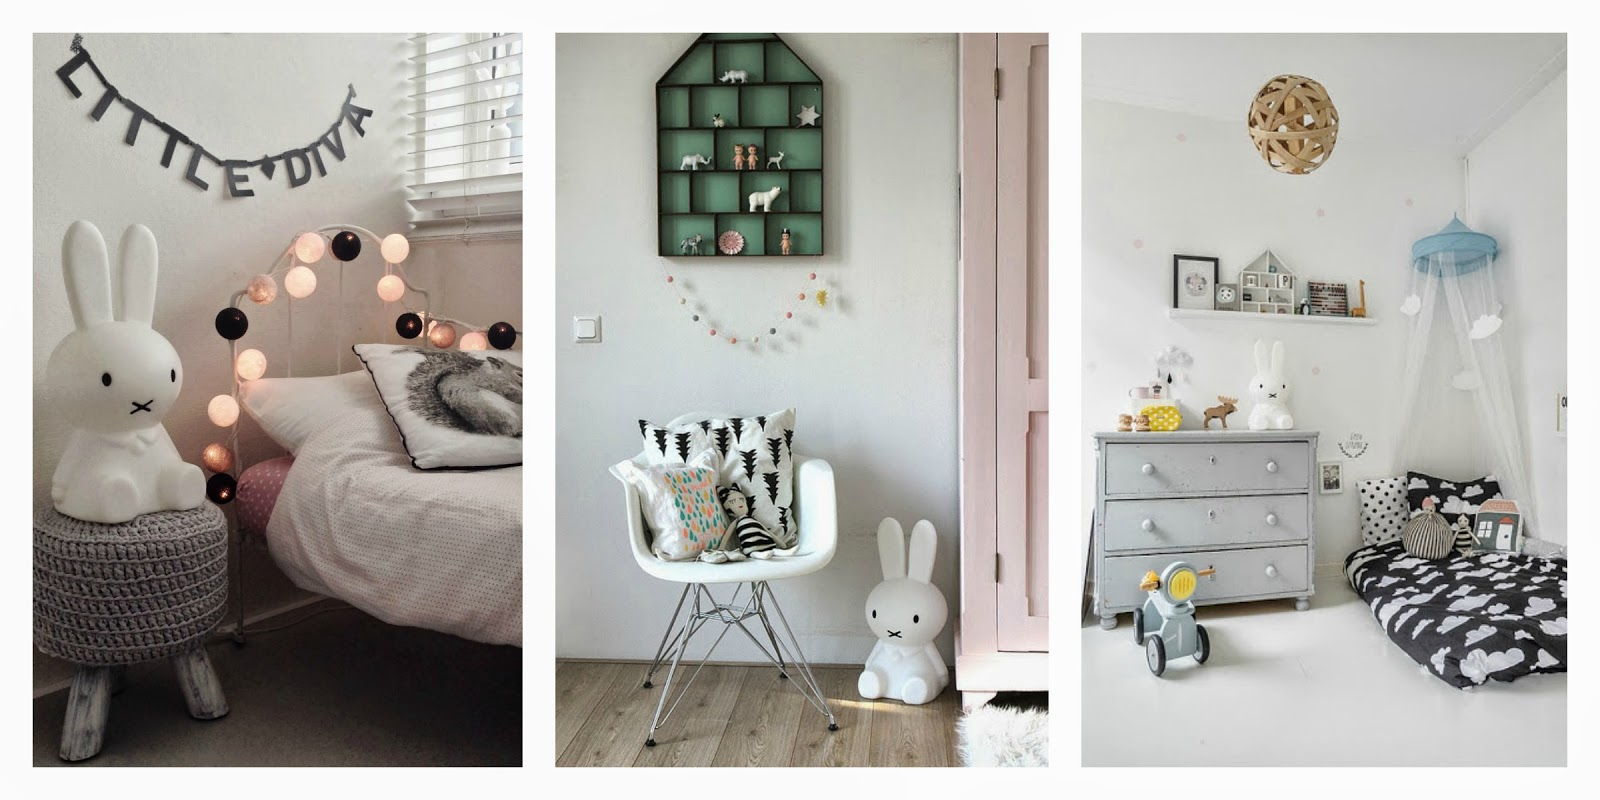 The 5 Coolest Bedroom Items Every Kid Needs According To Pinterest V I Bedroom Mamas V I B